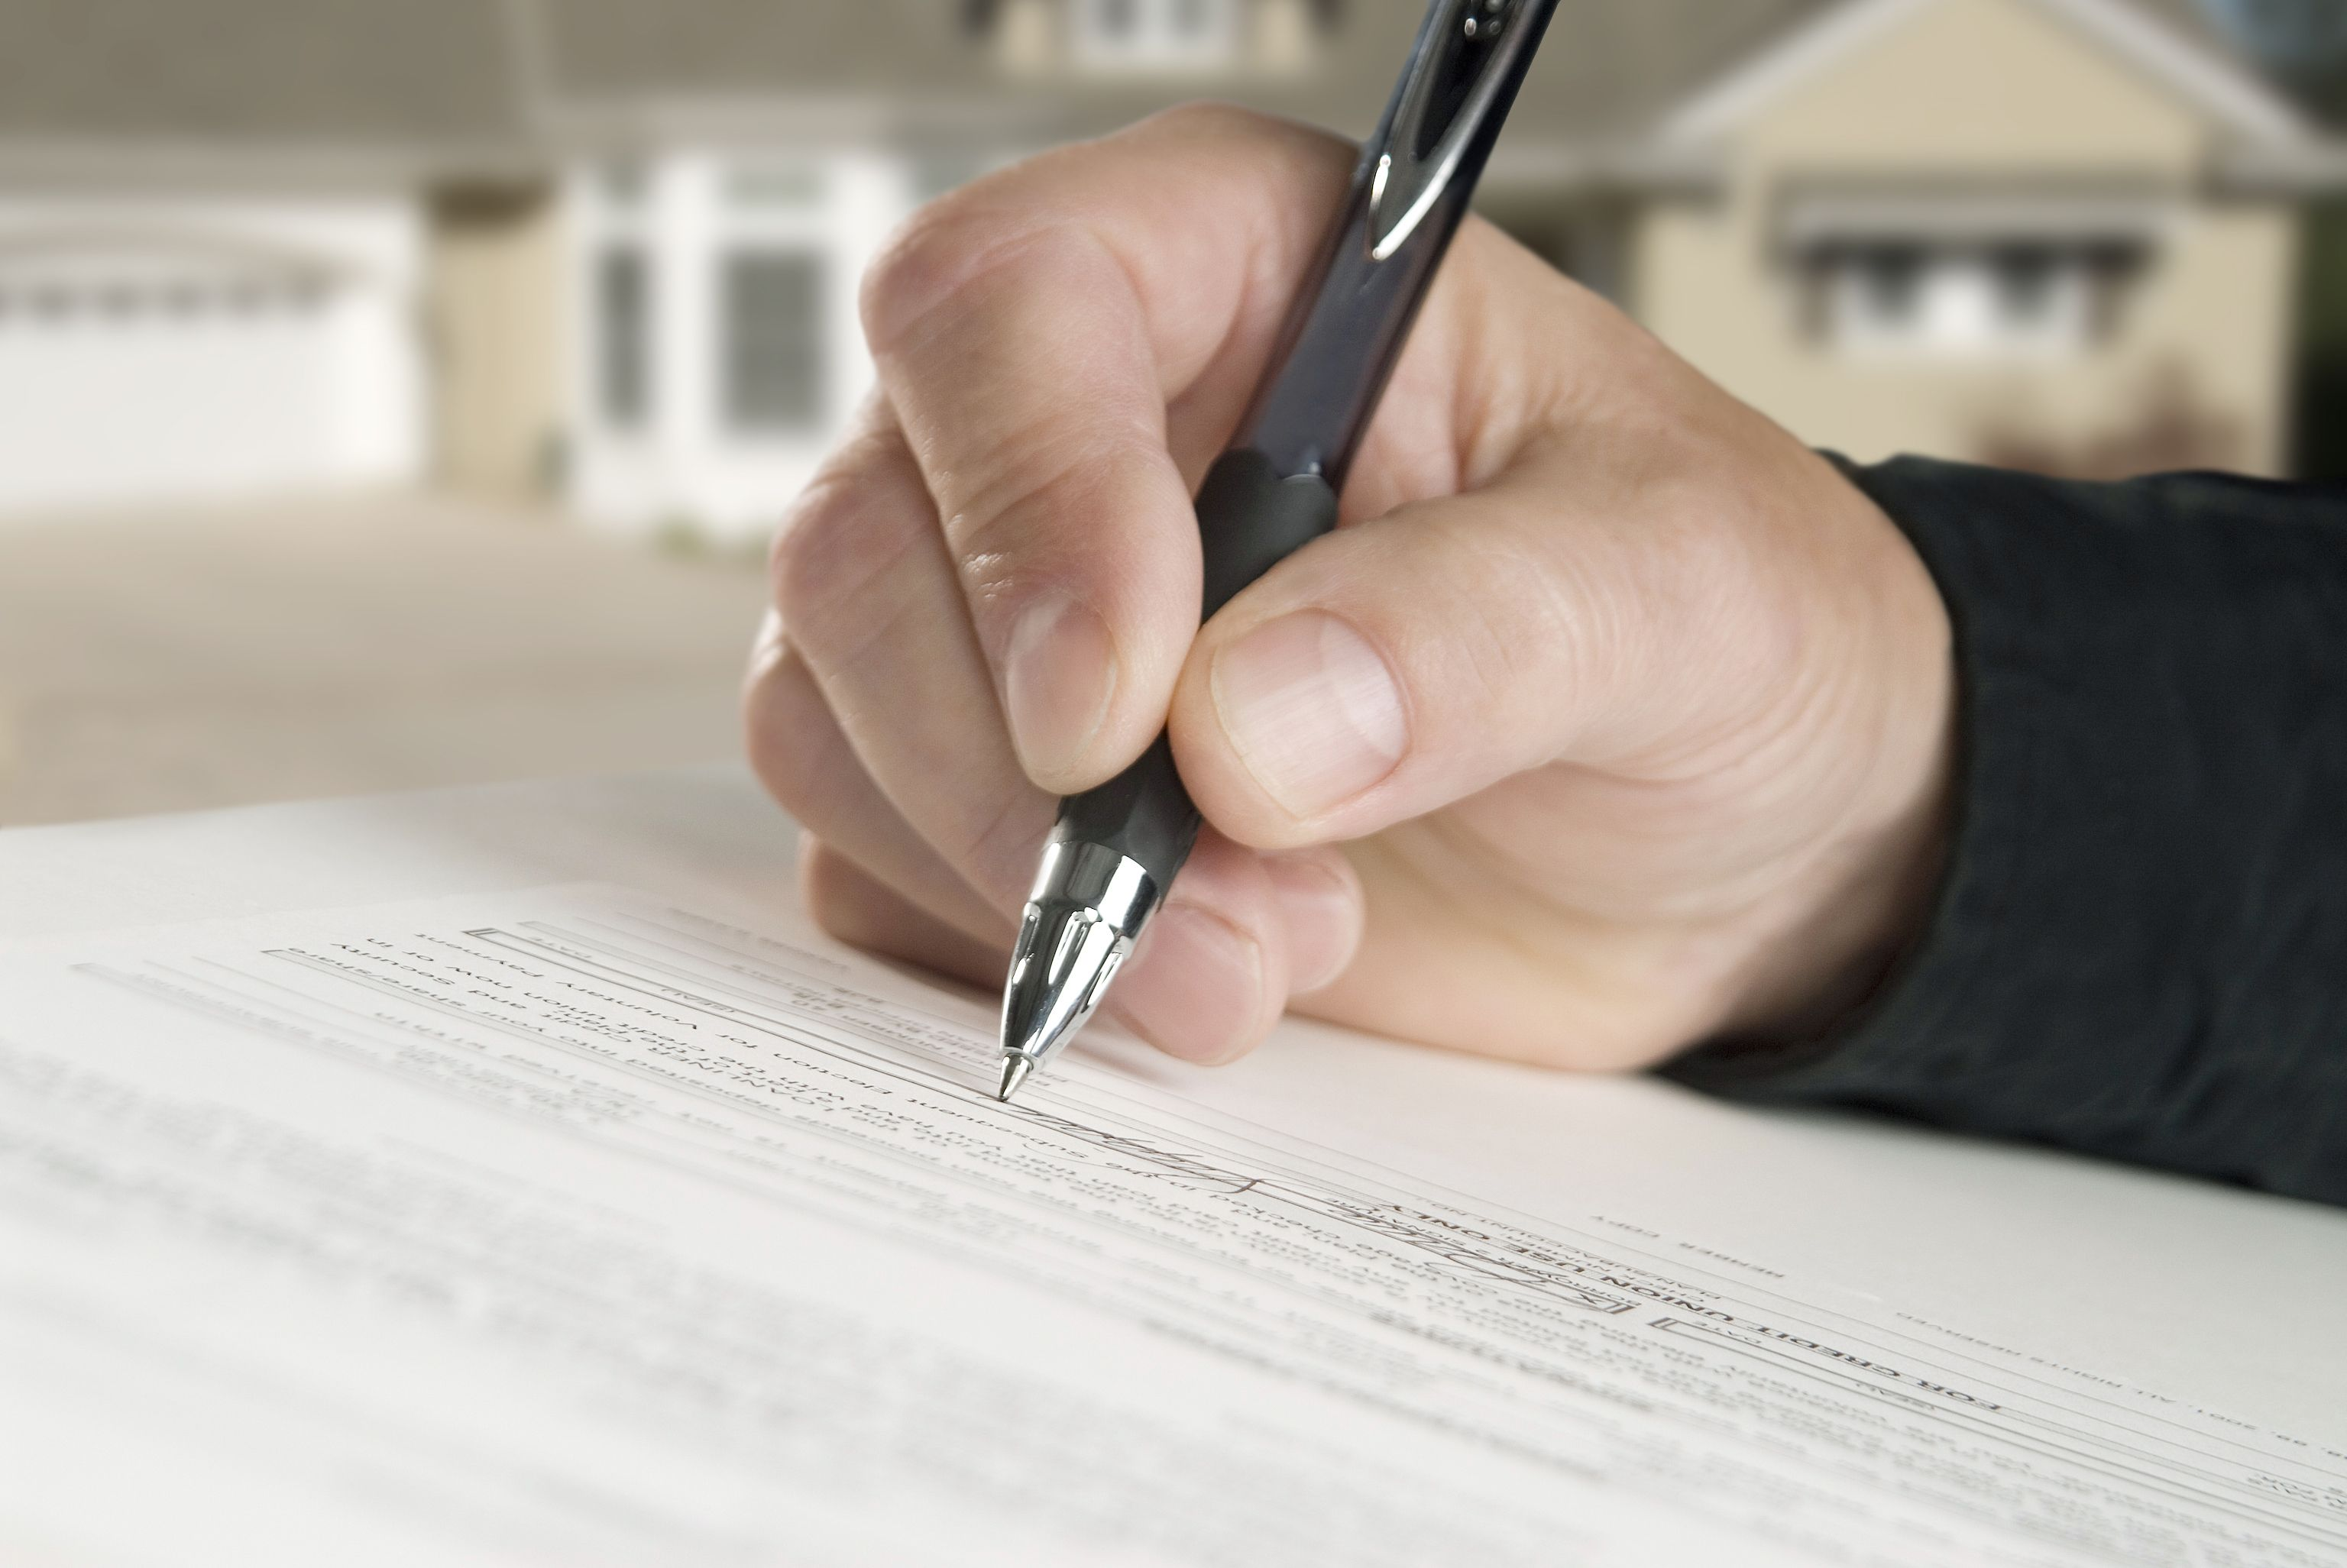 The real estate transaction, Part I The property title